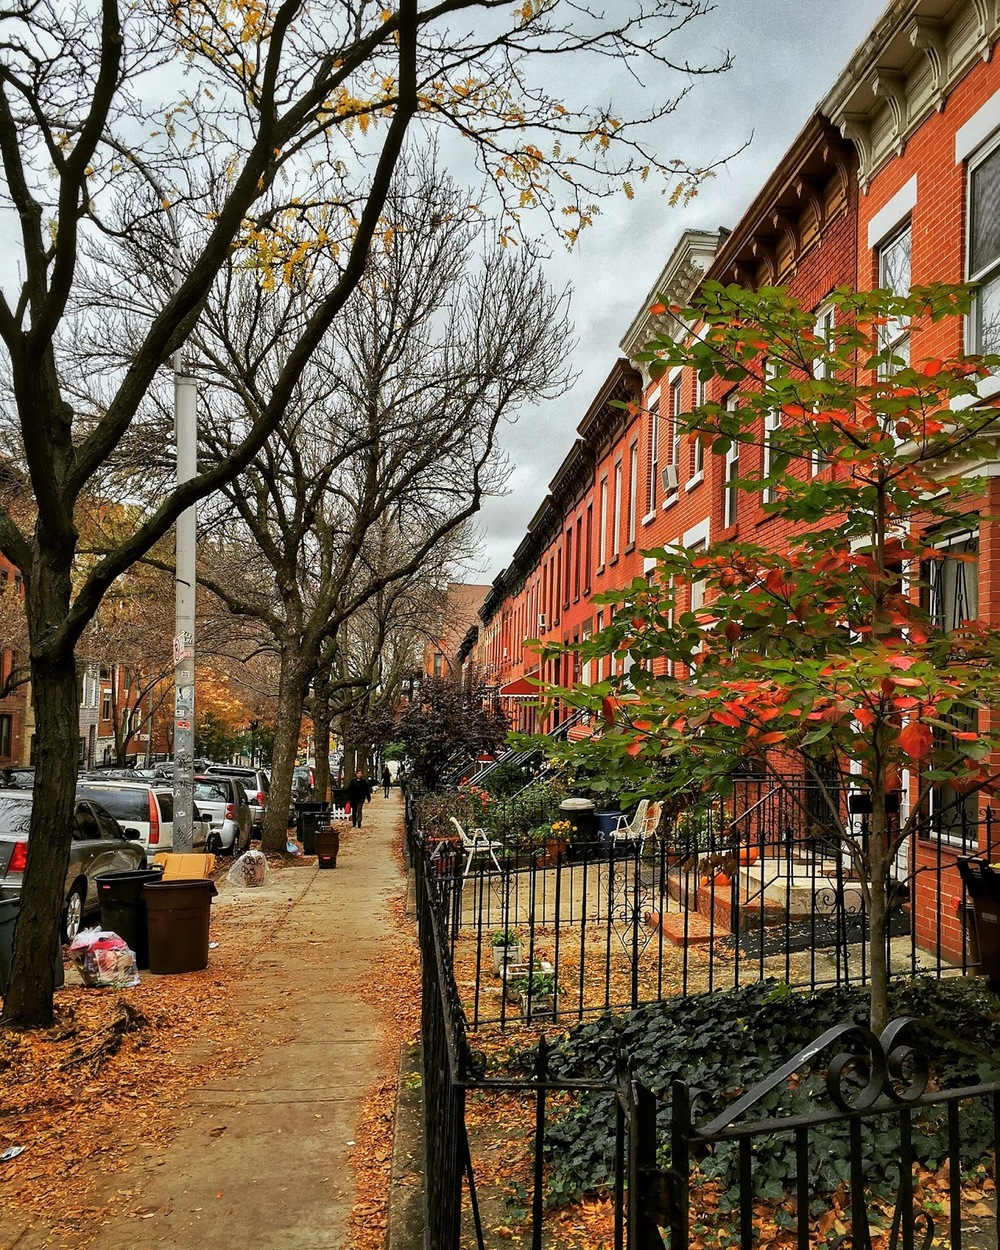 A typical street in Park Slope, Brooklyn.